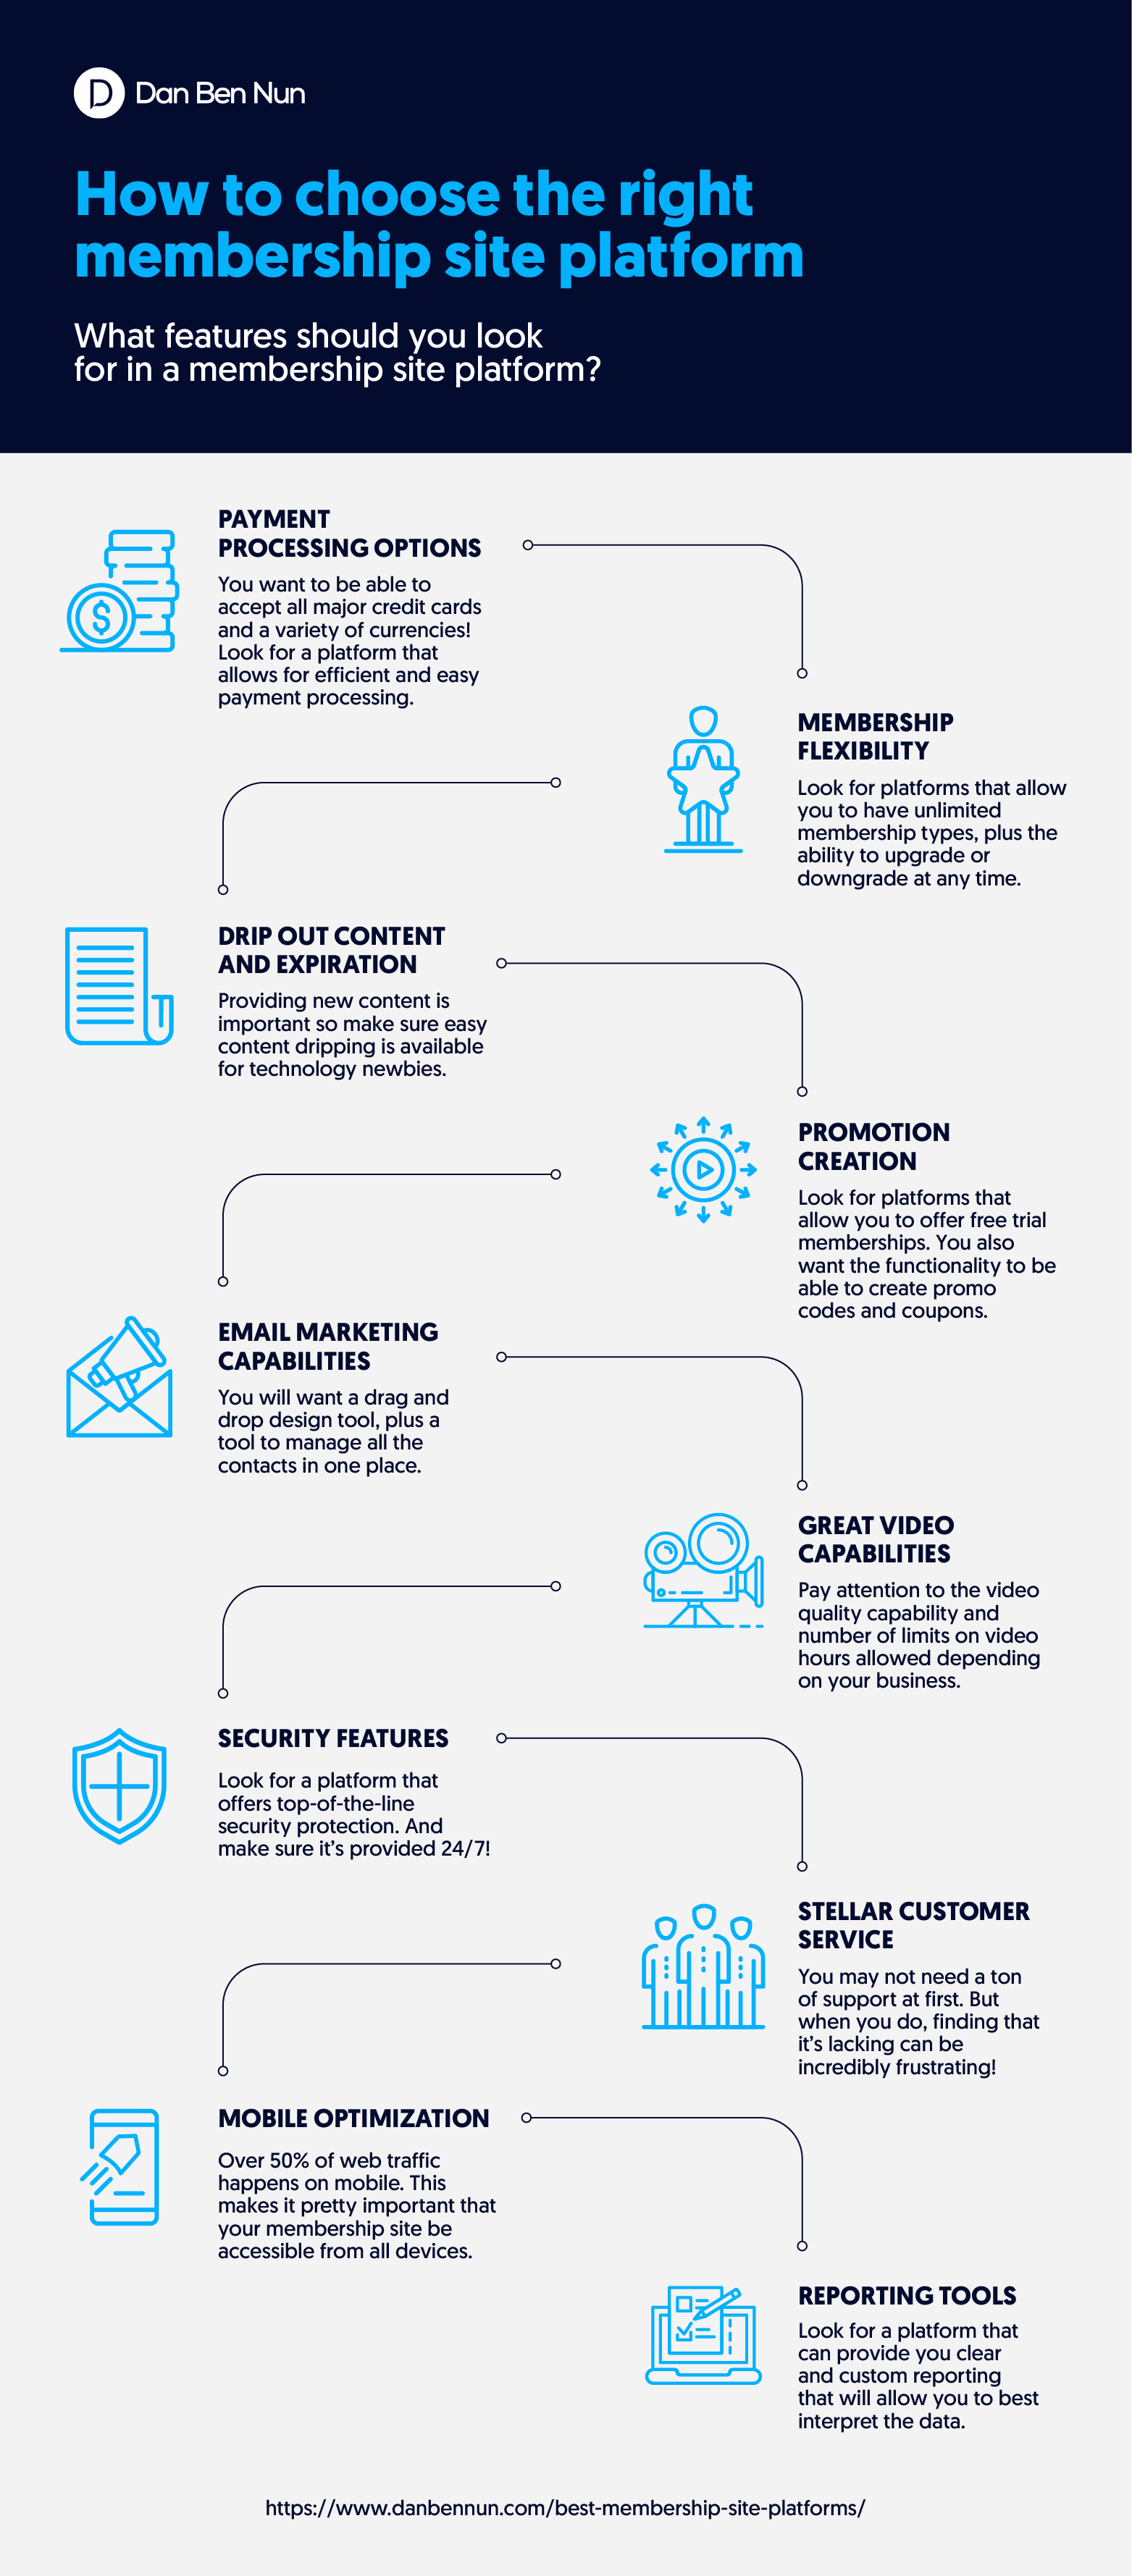 How to choose the right membership site platform infographic made by Dan Bennun